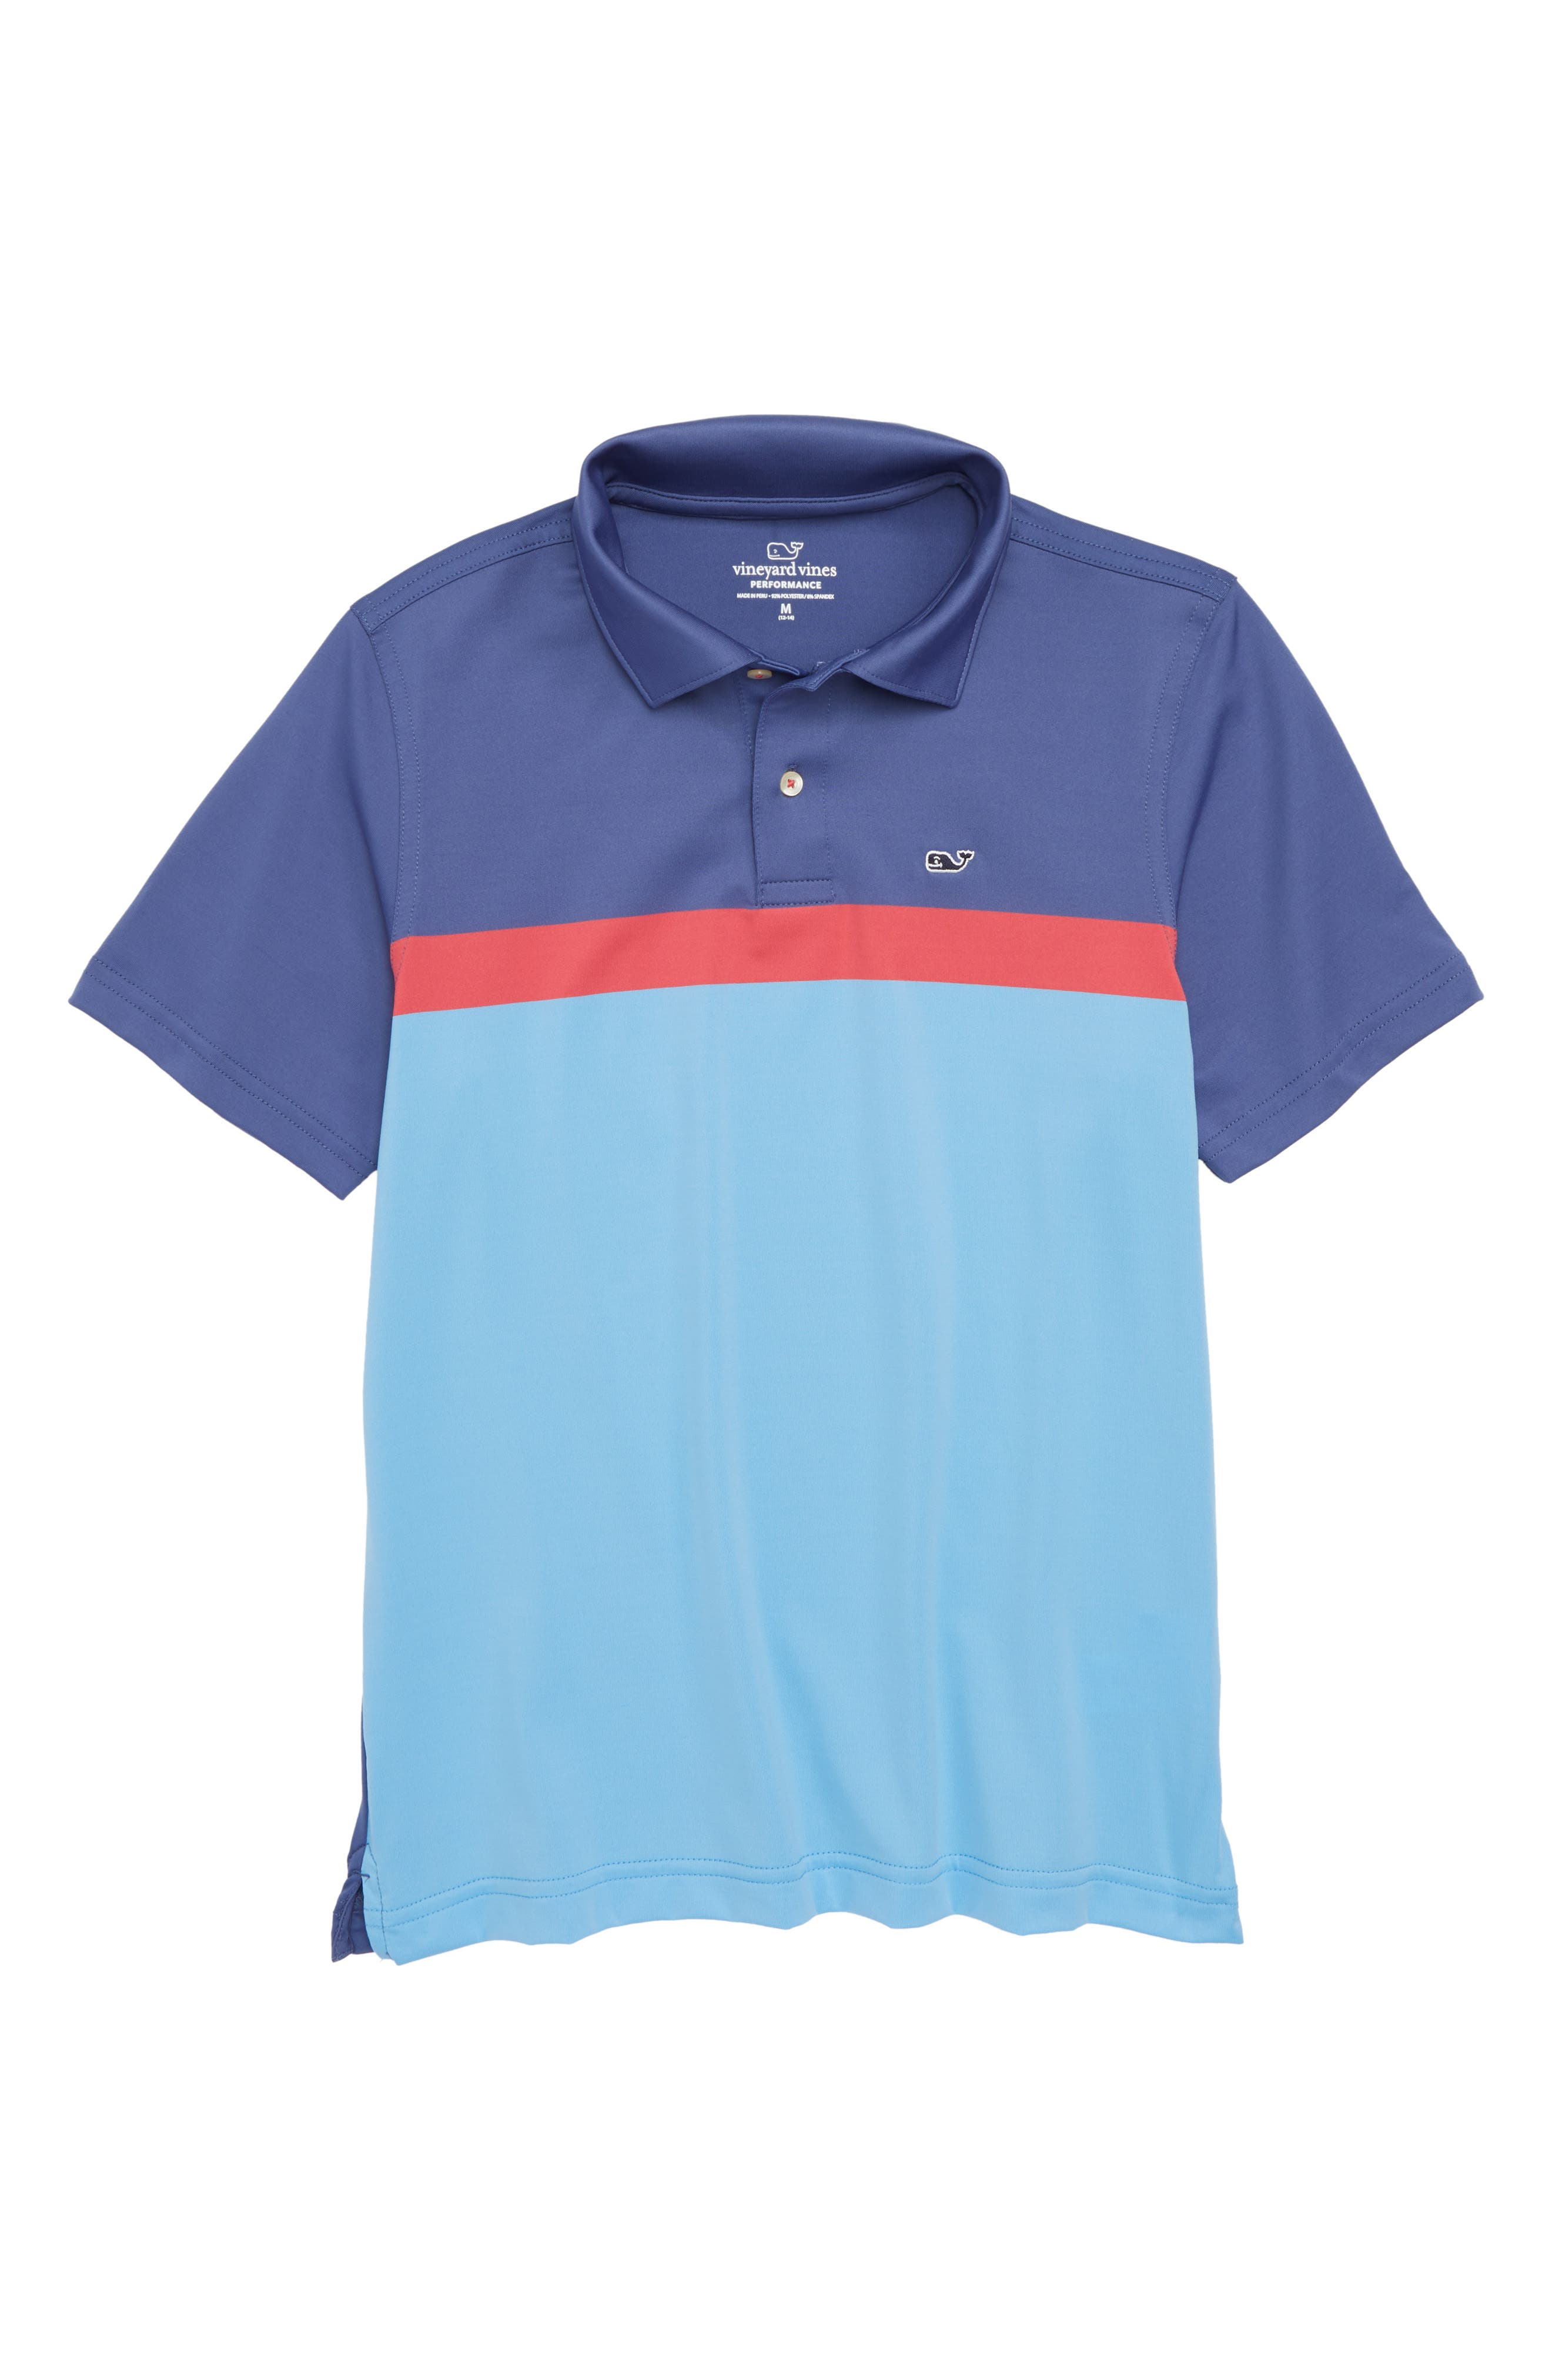 vineyard vines Engineer Stripe Performance Polo (Toddler Boys & Little Boys)